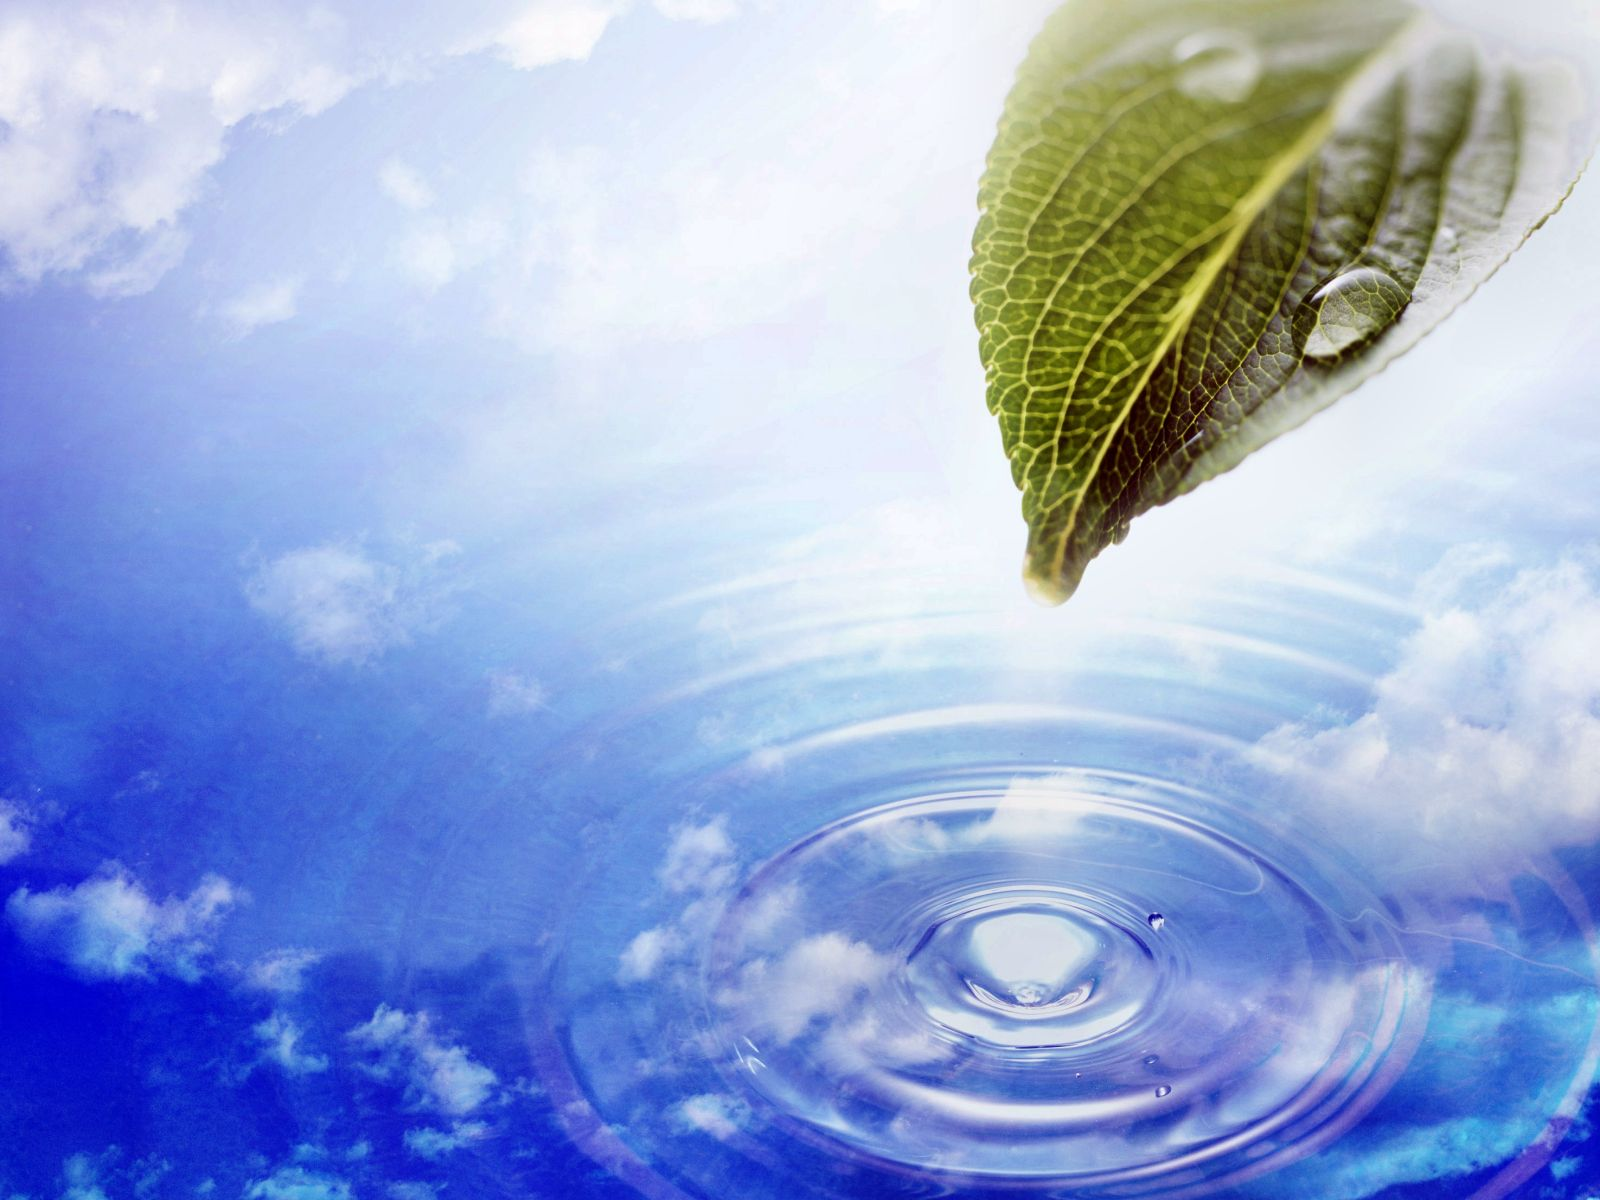 animated wallpaper for windows 7 animated windows 7 wallpaper animated 1600x1200